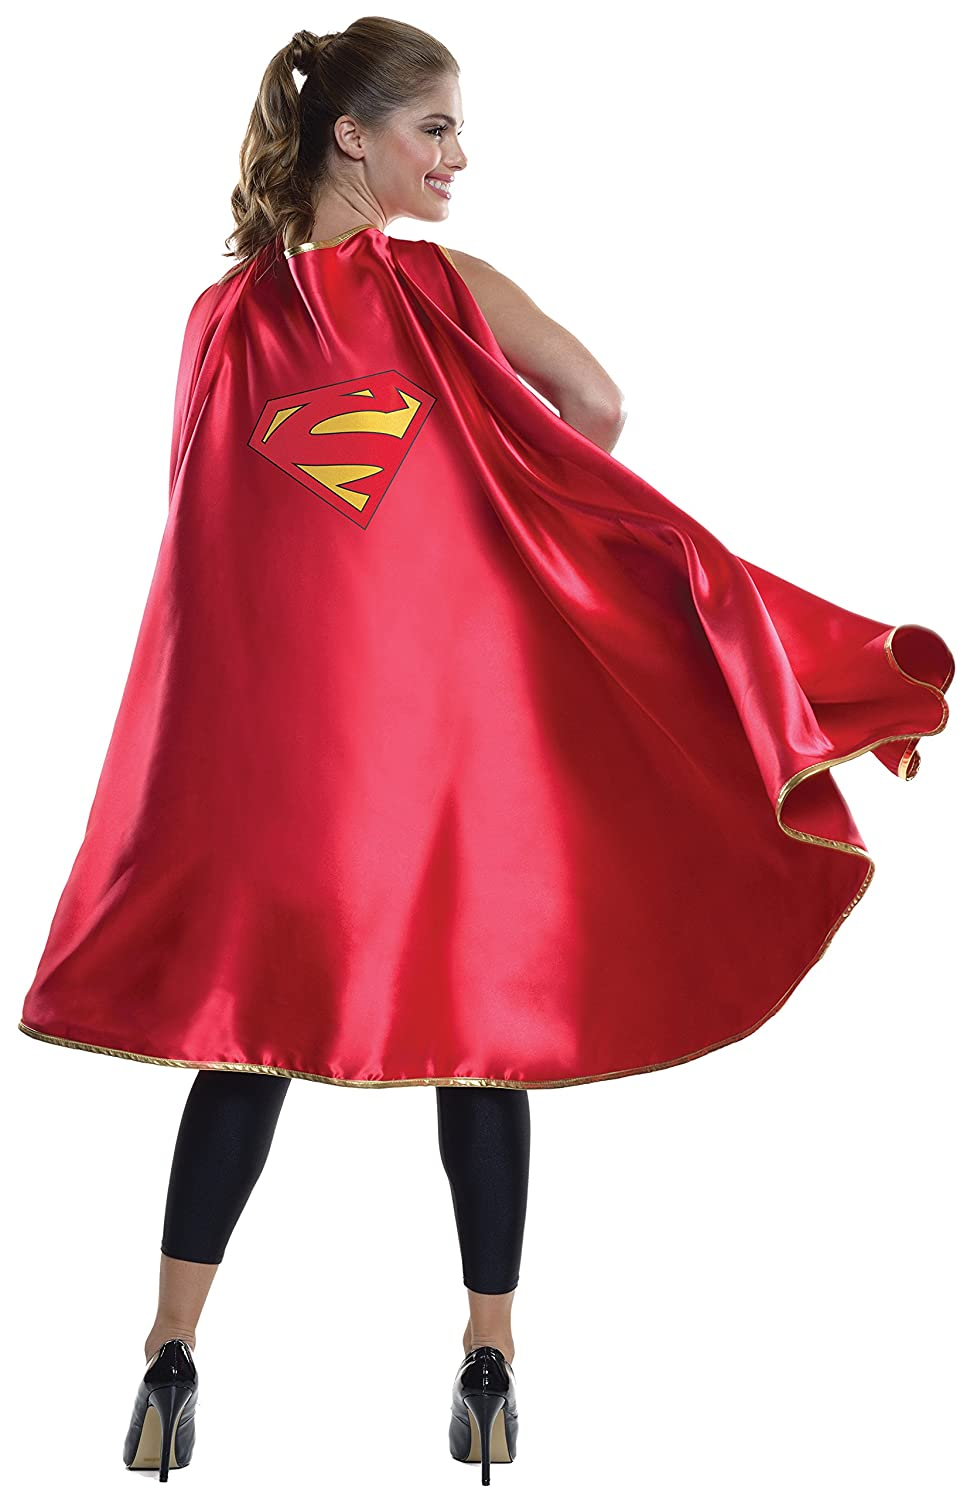 Rubie's Costume Co Women's DC Superheroes Deluxe Supergirl Cape